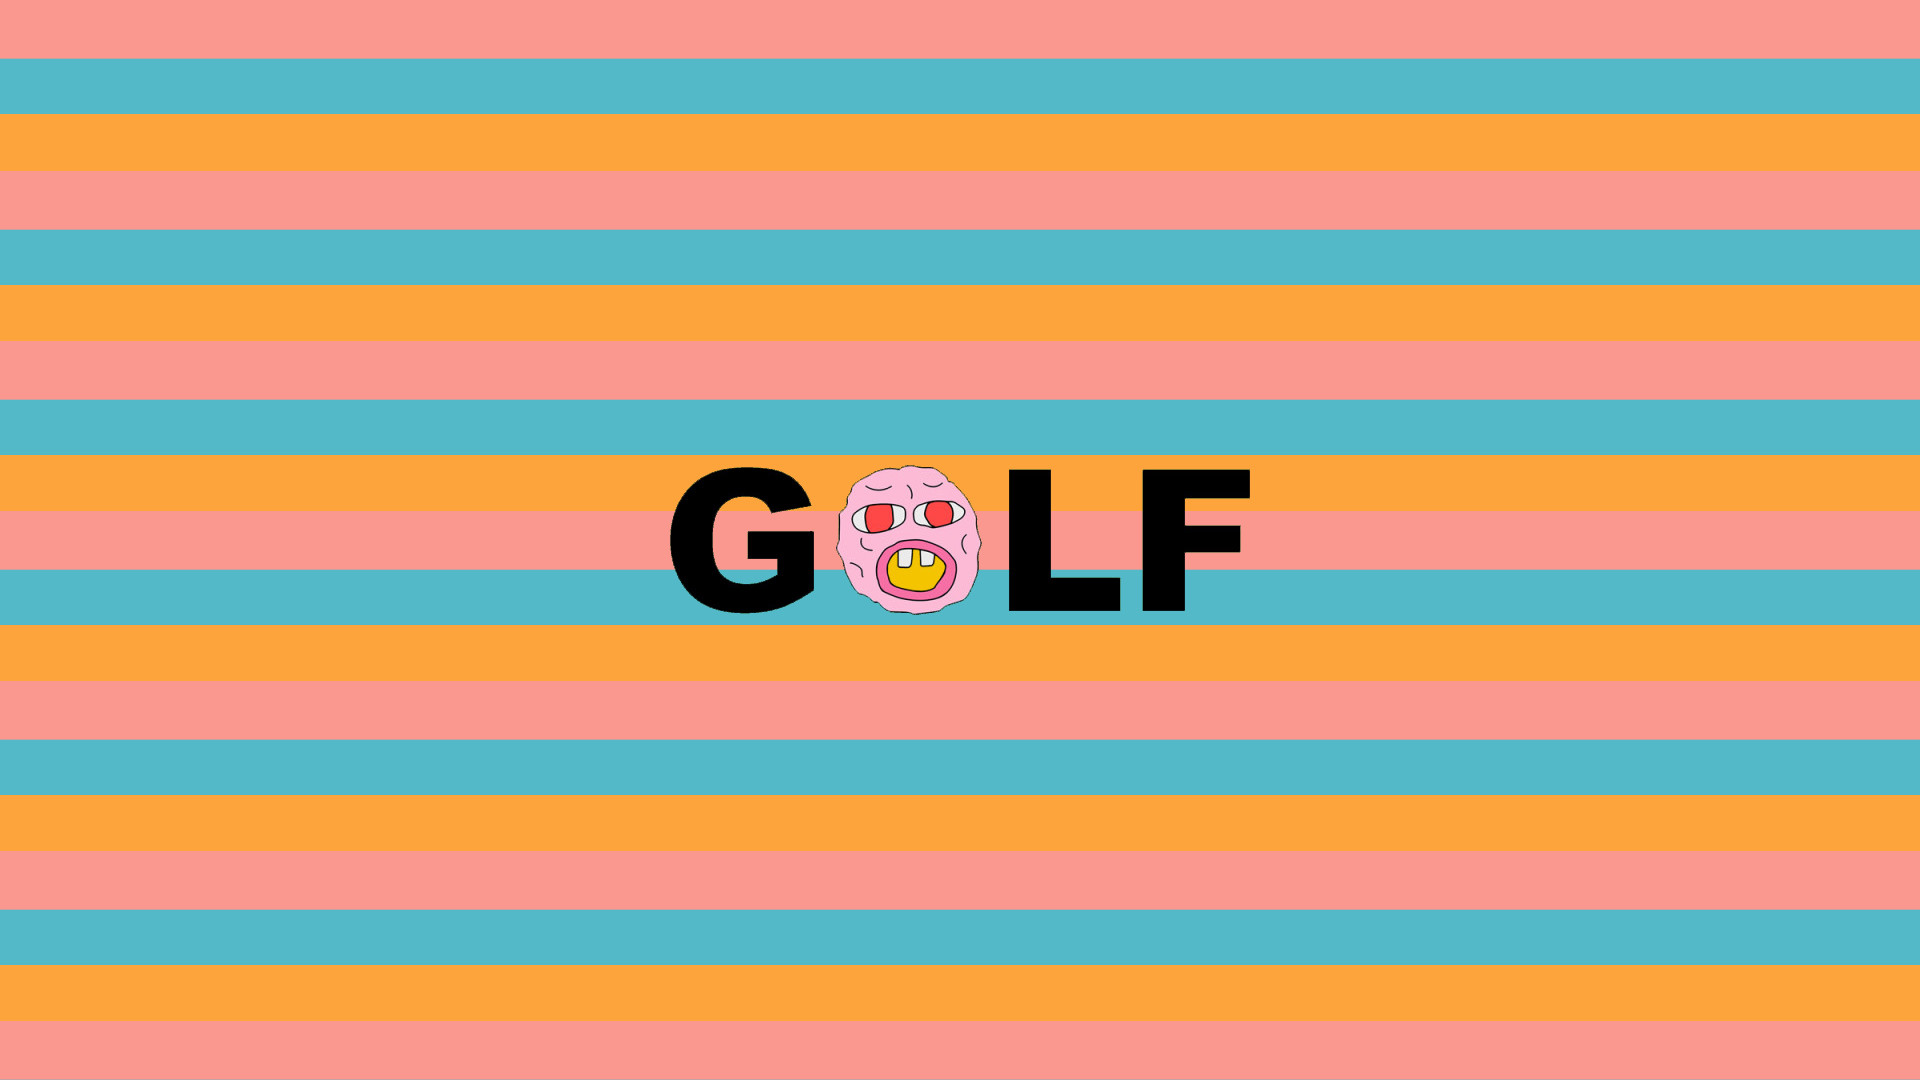 Odd Future Iphone Wallpaper Hd 67 Images